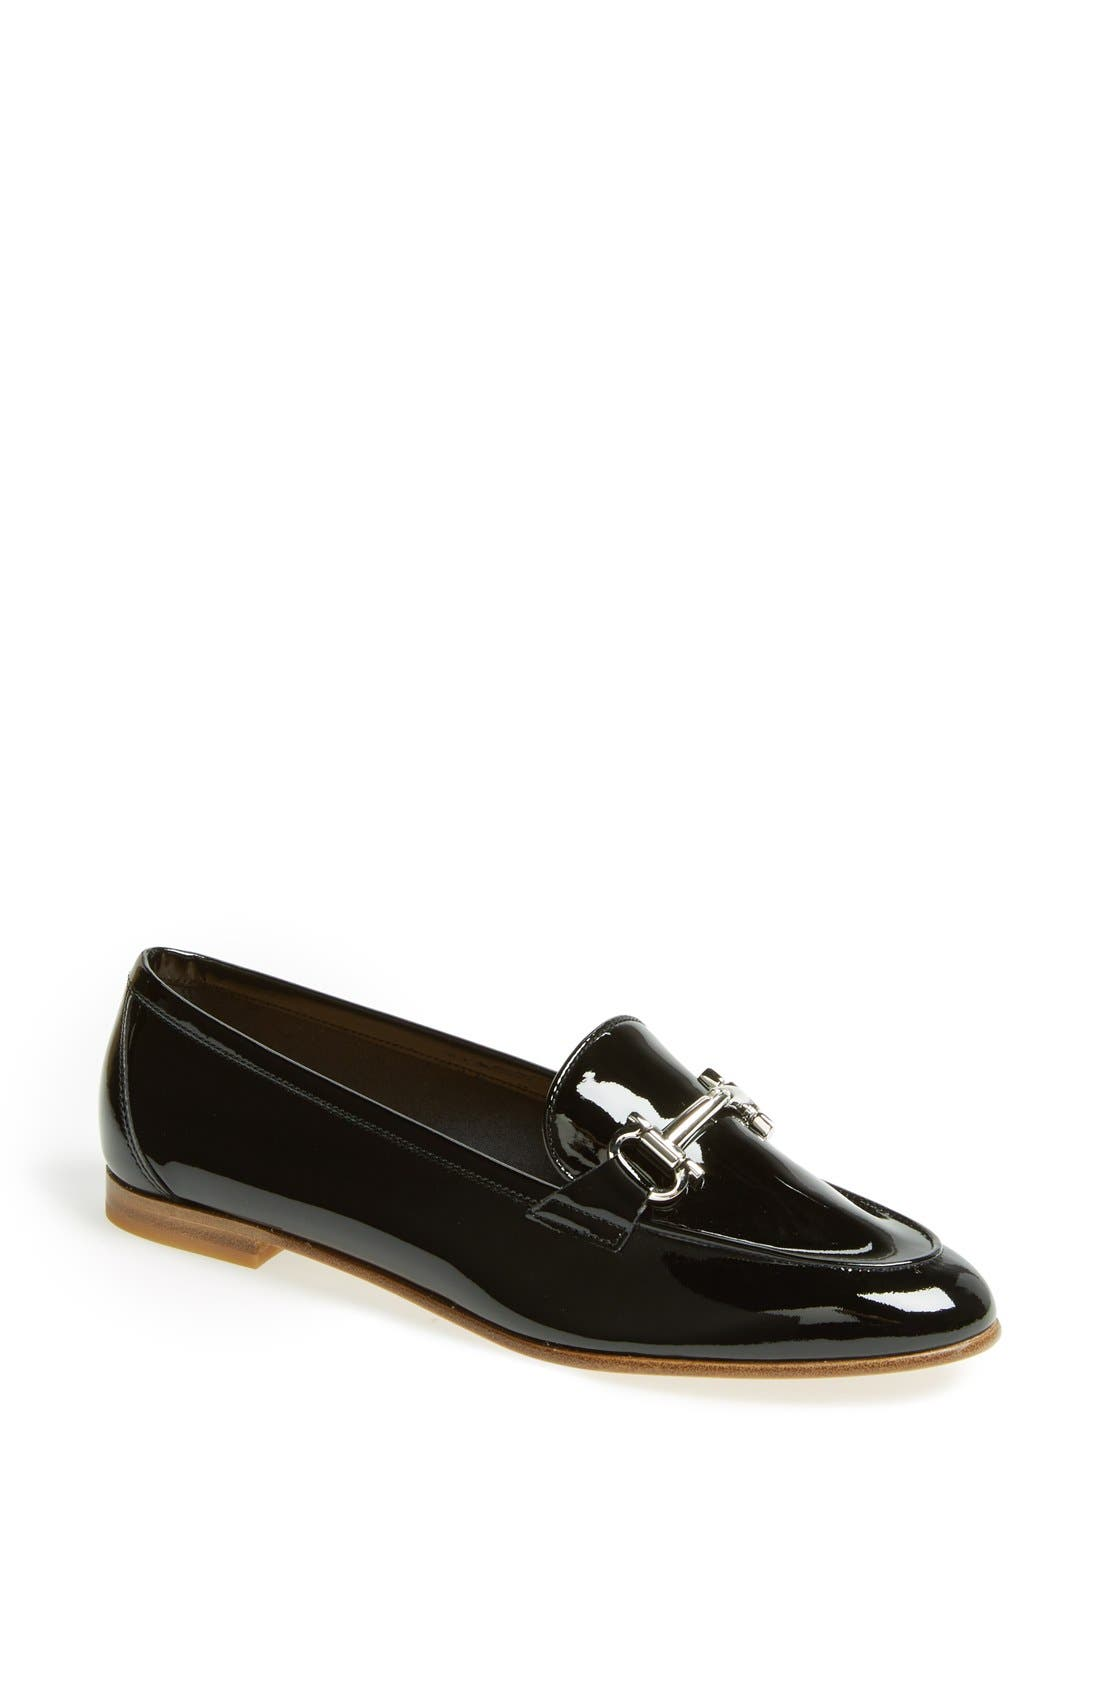 Main Image - Salvatore Ferragamo 'My Informal' Leather Loafer